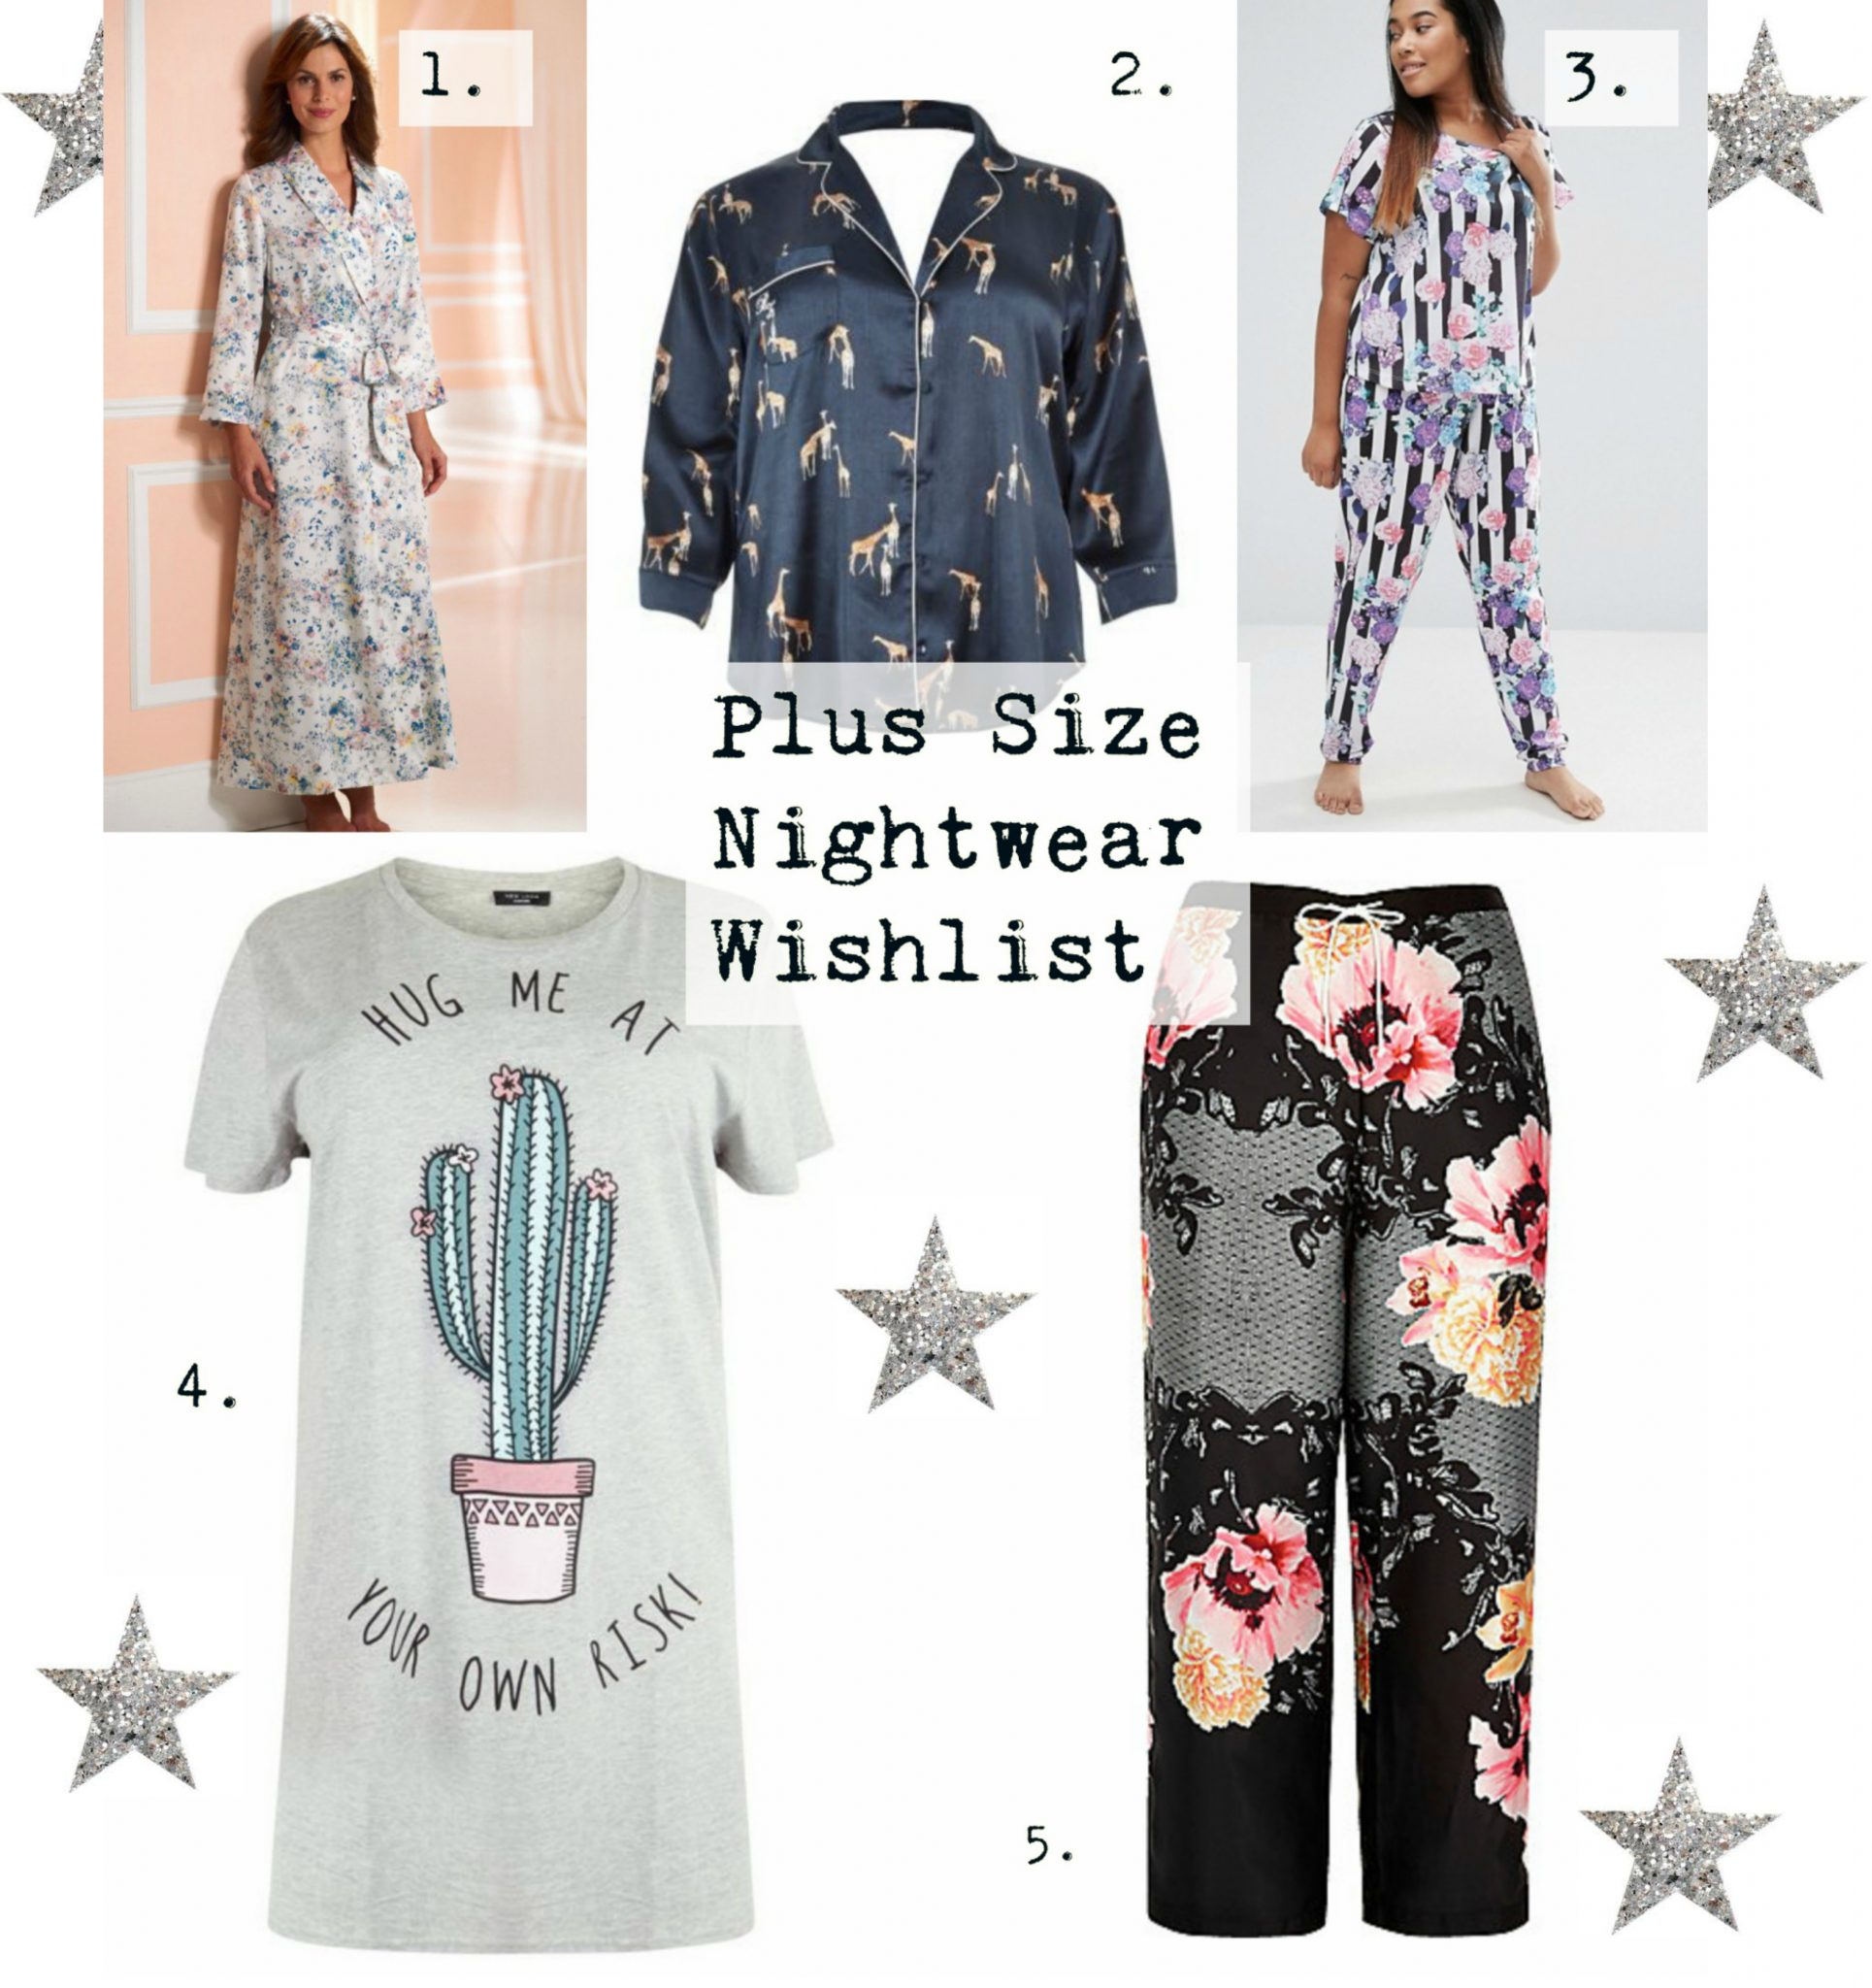 Plus Size Nightwear Wishlist